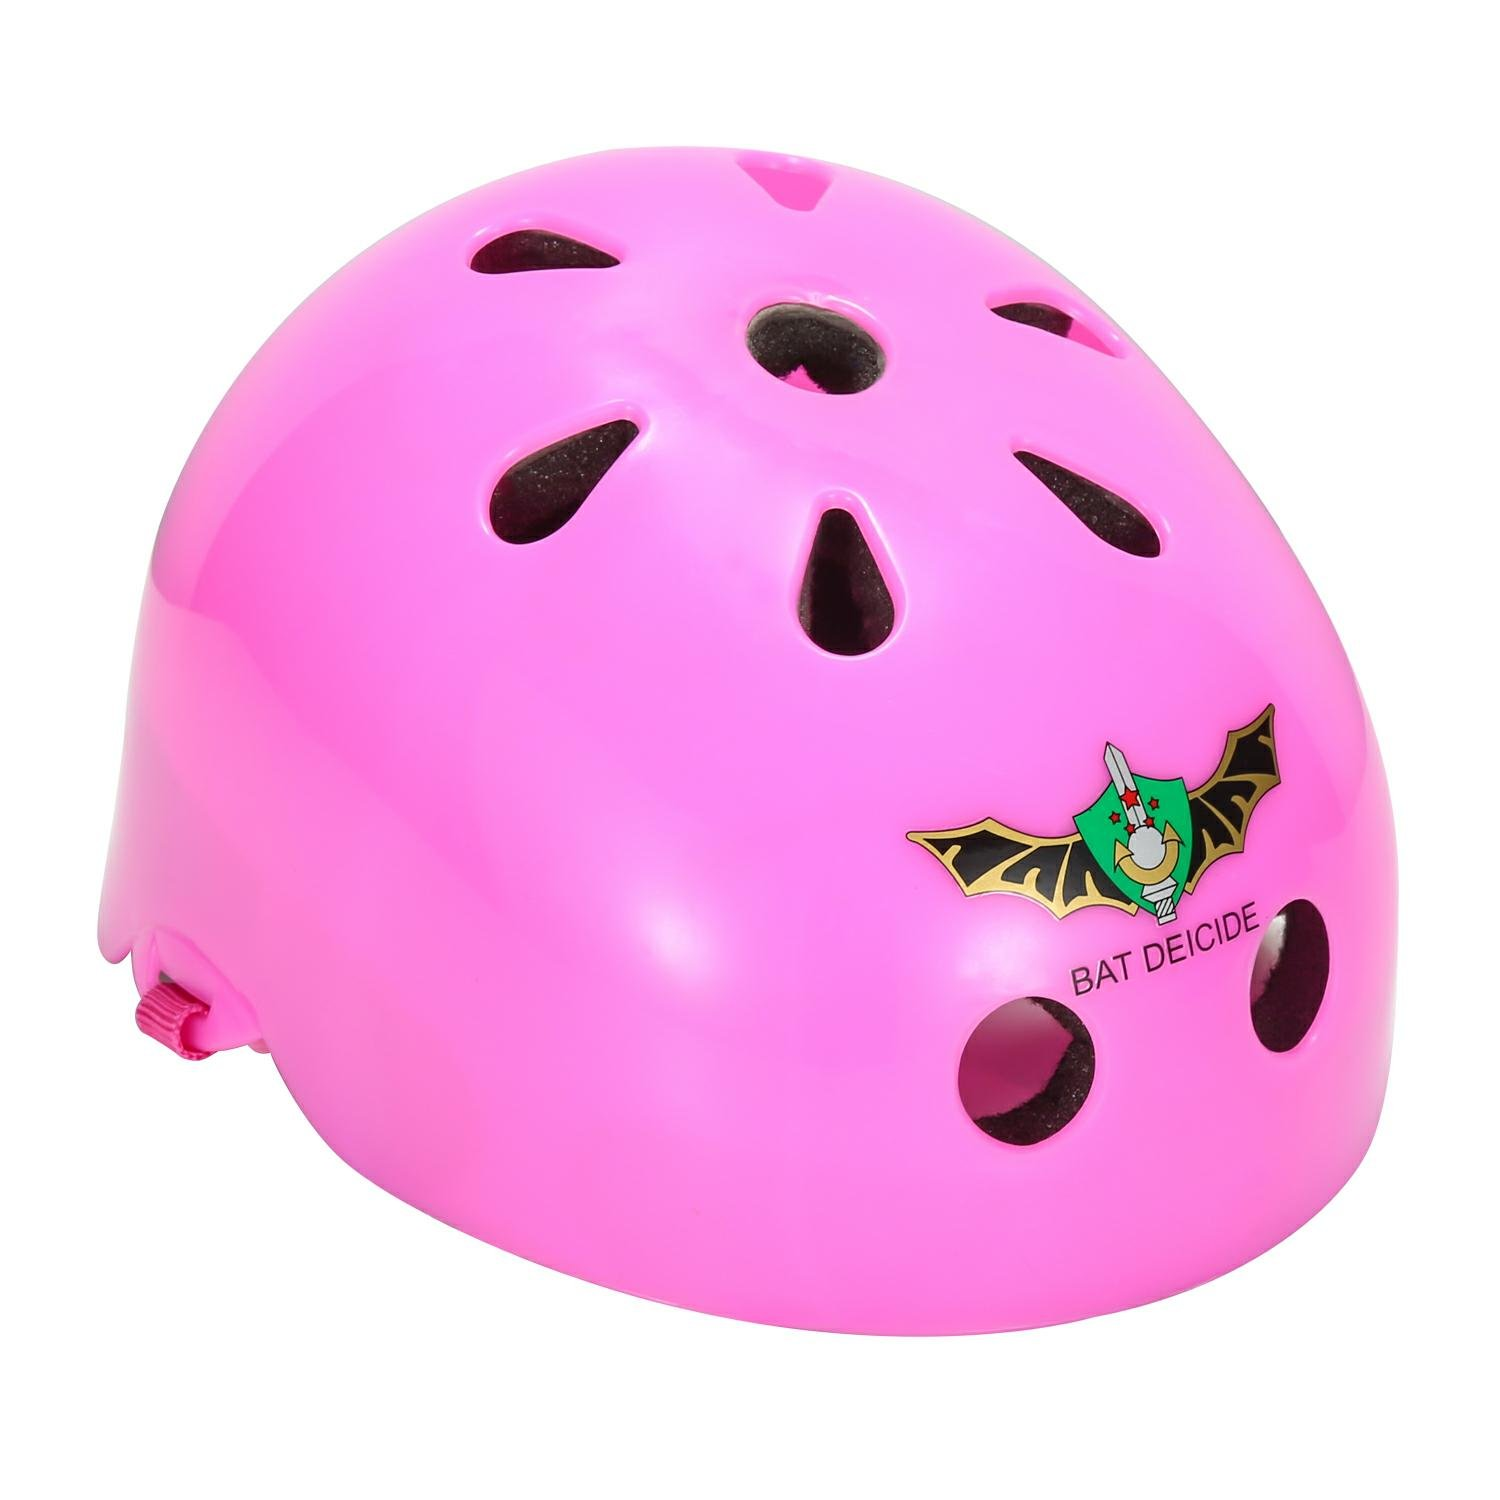 ASIBT Kid's Skateboard Helmet Sets Cycling Roller Skating Helmet Elbow Knee Pads Wrist Sport Safety Protective Guard Gear Set for Children of age 3-8 years old (Pink) by ASIBT (Image #2)